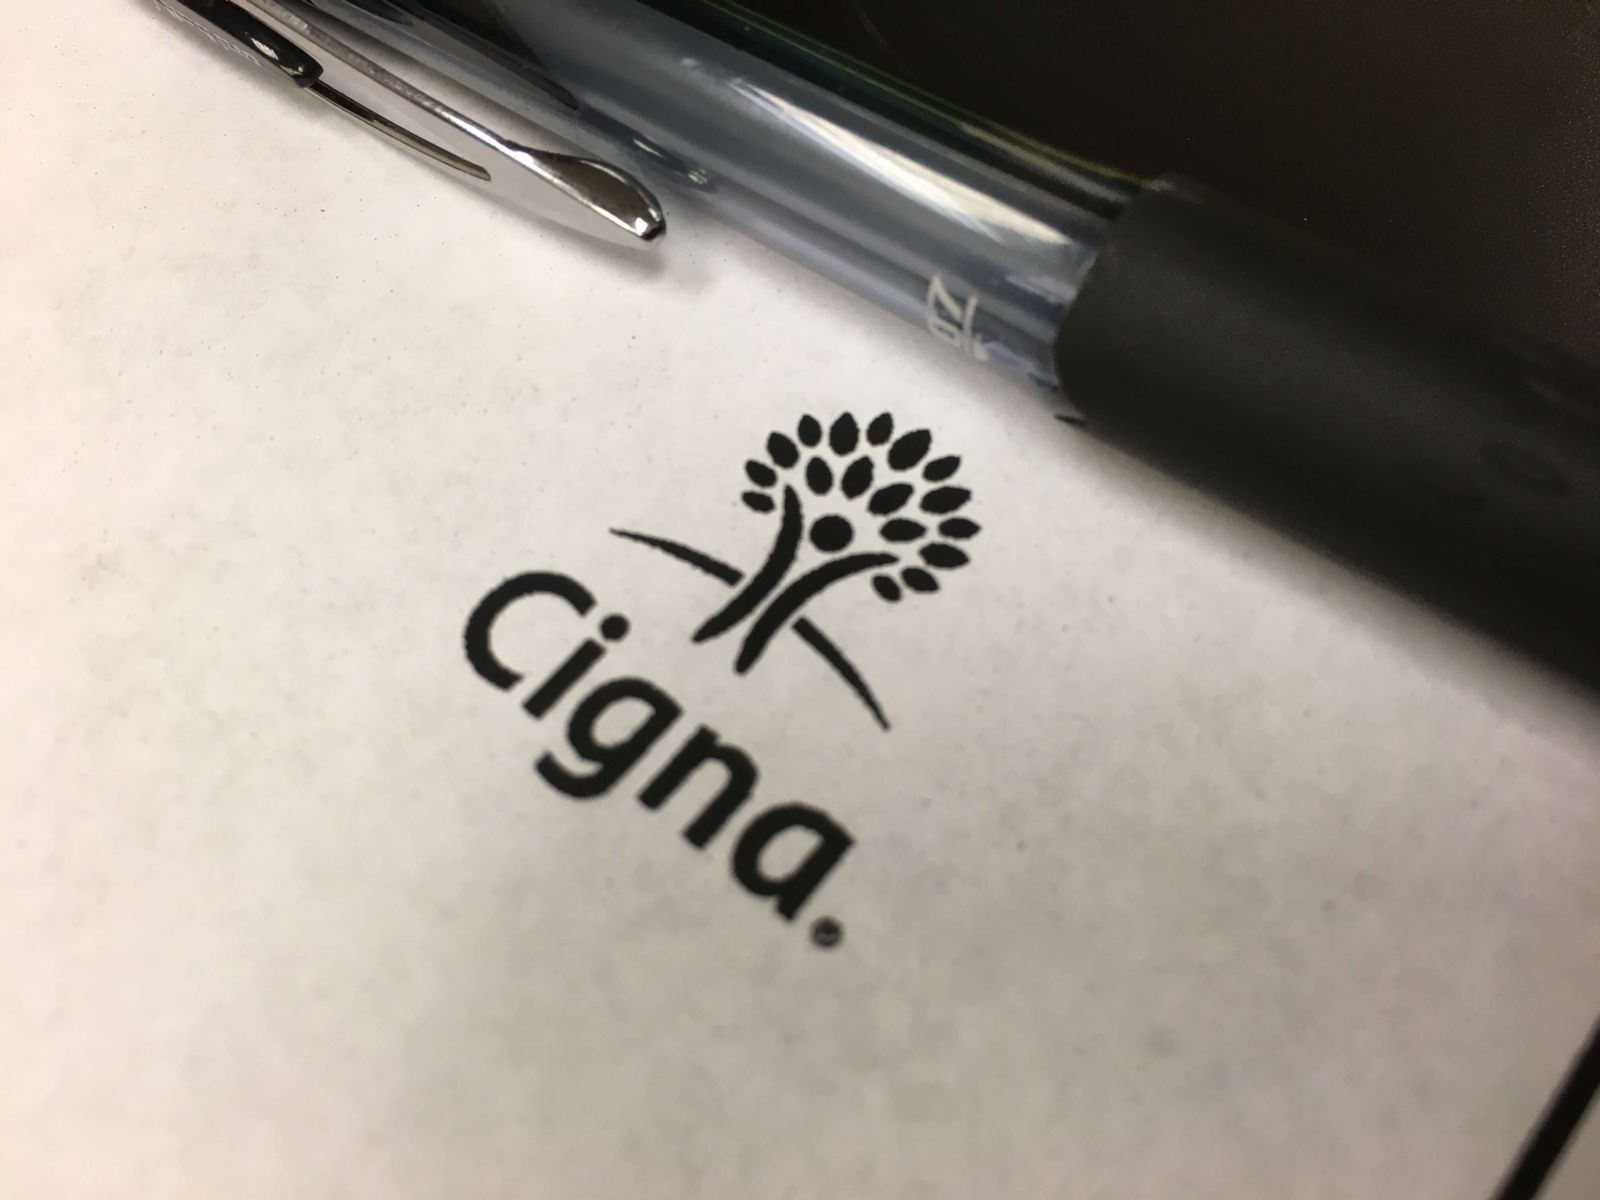 Our Indianapolis disability attorneys are here to help with appealing your denied Cigna benefits claim.